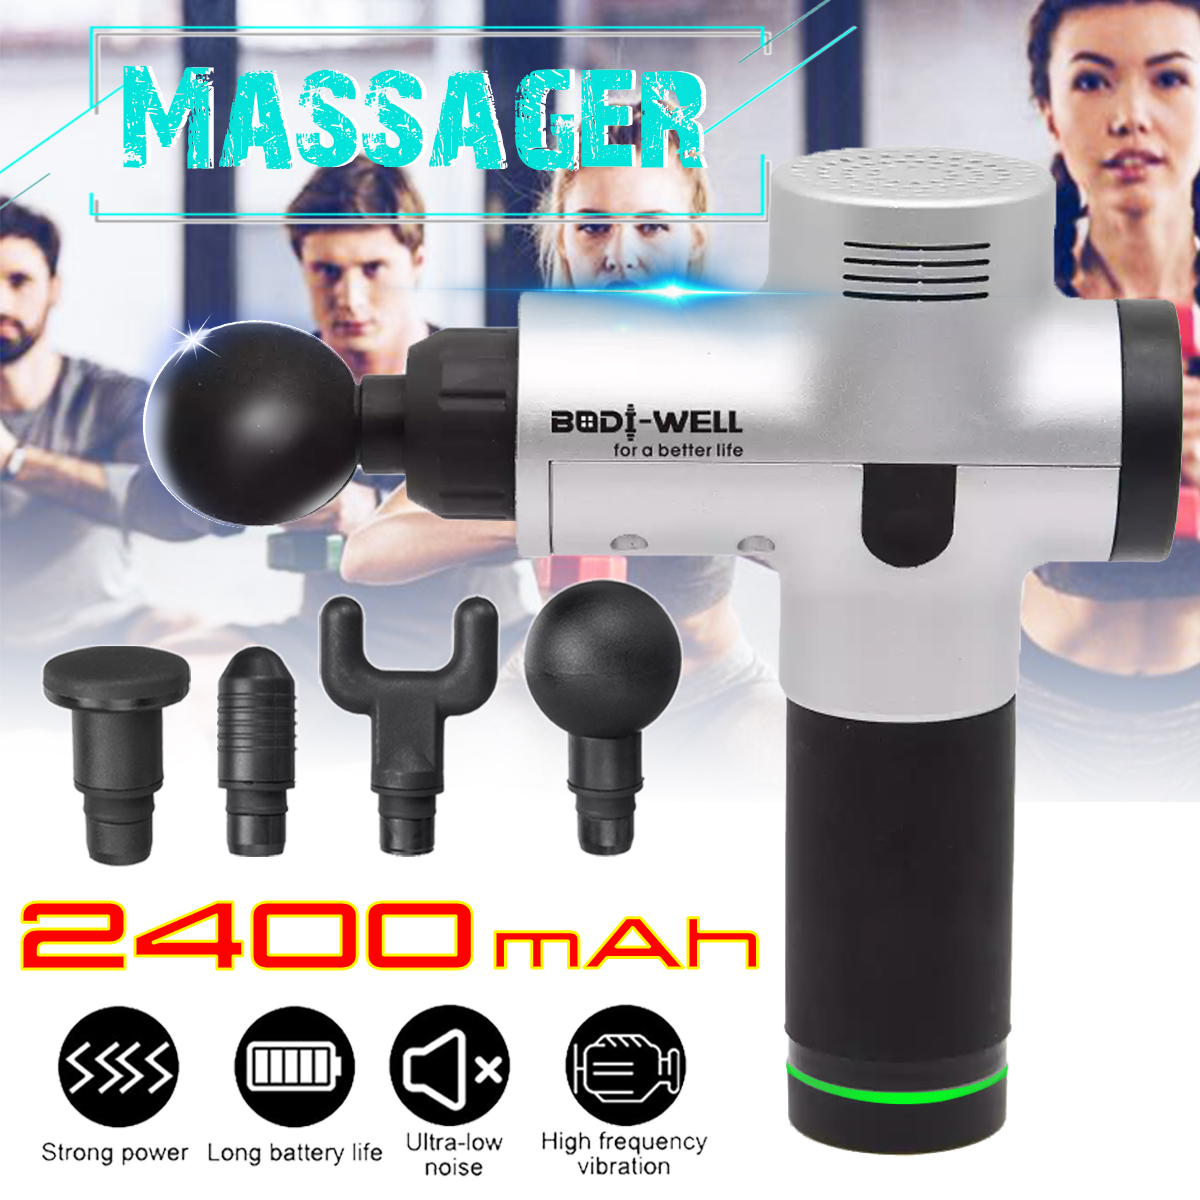 2400 mAh Percussion Massage Deep Tissue Electric Massager Cordless Massag Device for Body Pain Relief